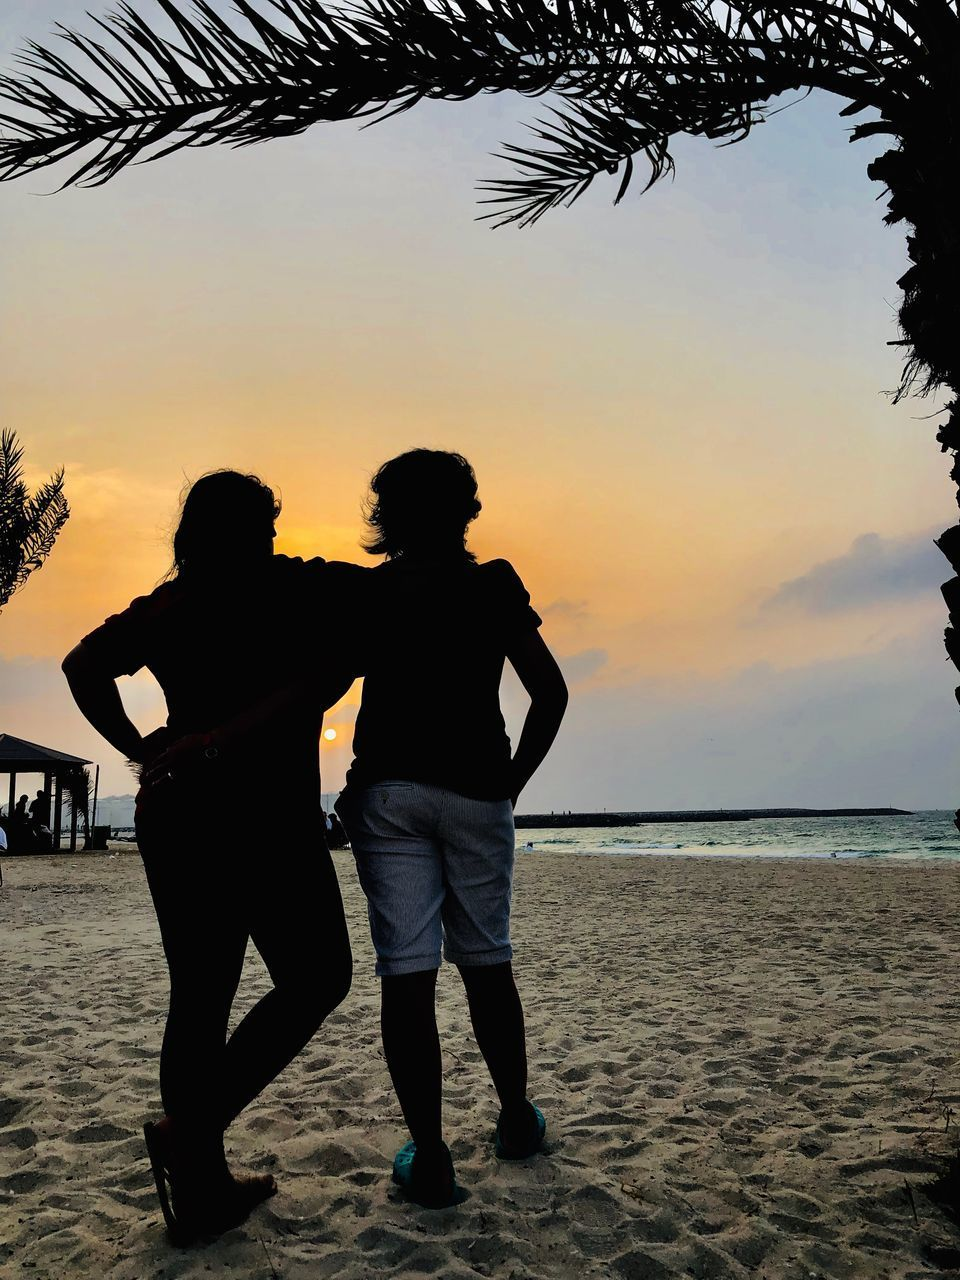 sunset, sky, two people, sea, water, real people, beach, men, leisure activity, togetherness, land, lifestyles, beauty in nature, standing, nature, bonding, full length, love, women, couple - relationship, positive emotion, horizon over water, outdoors, arm around